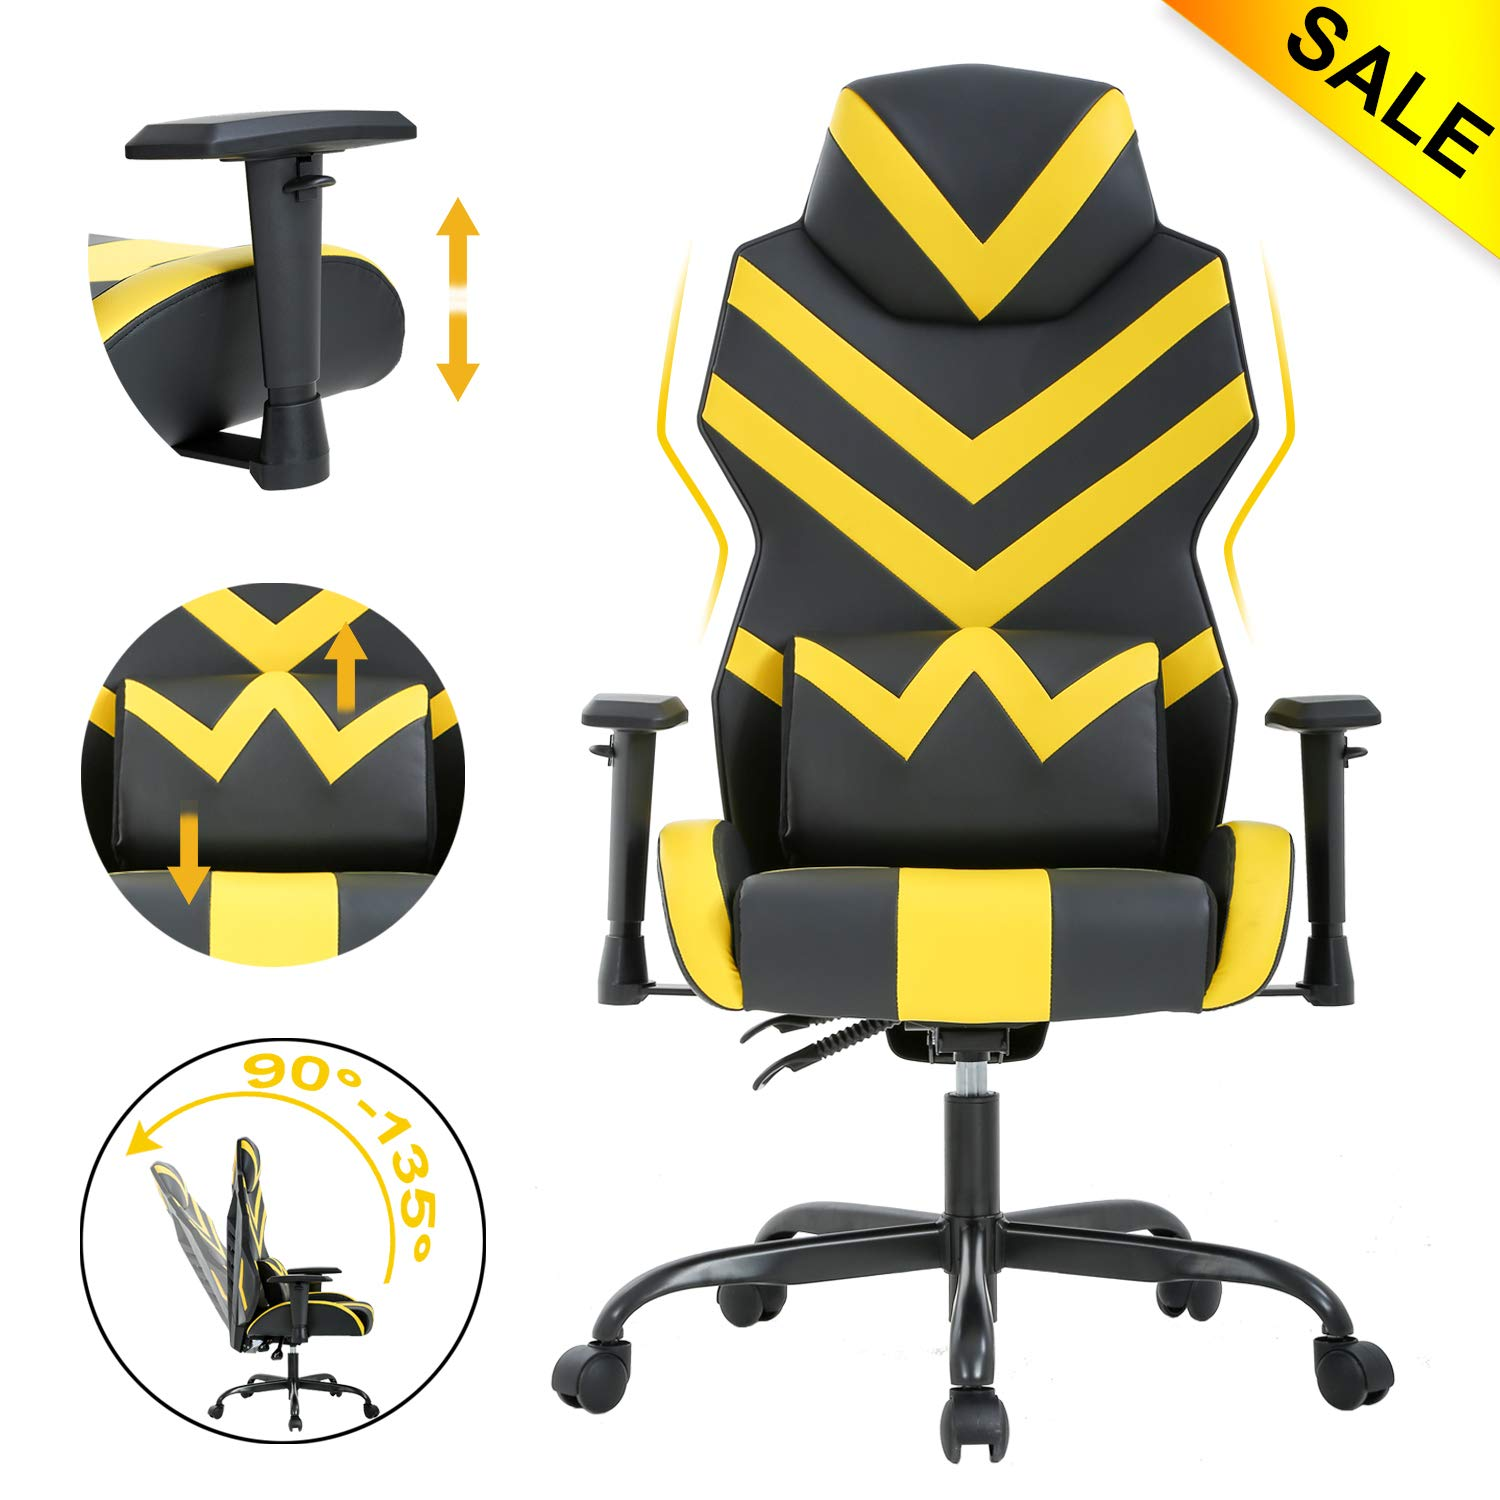 Office Chair Gaming Chair Desk Chair with Lumbar Support Adjustable Armrest Ergonomic Chair Swivel Rolling Executive Computer Chair for Adults Girl, Yellow